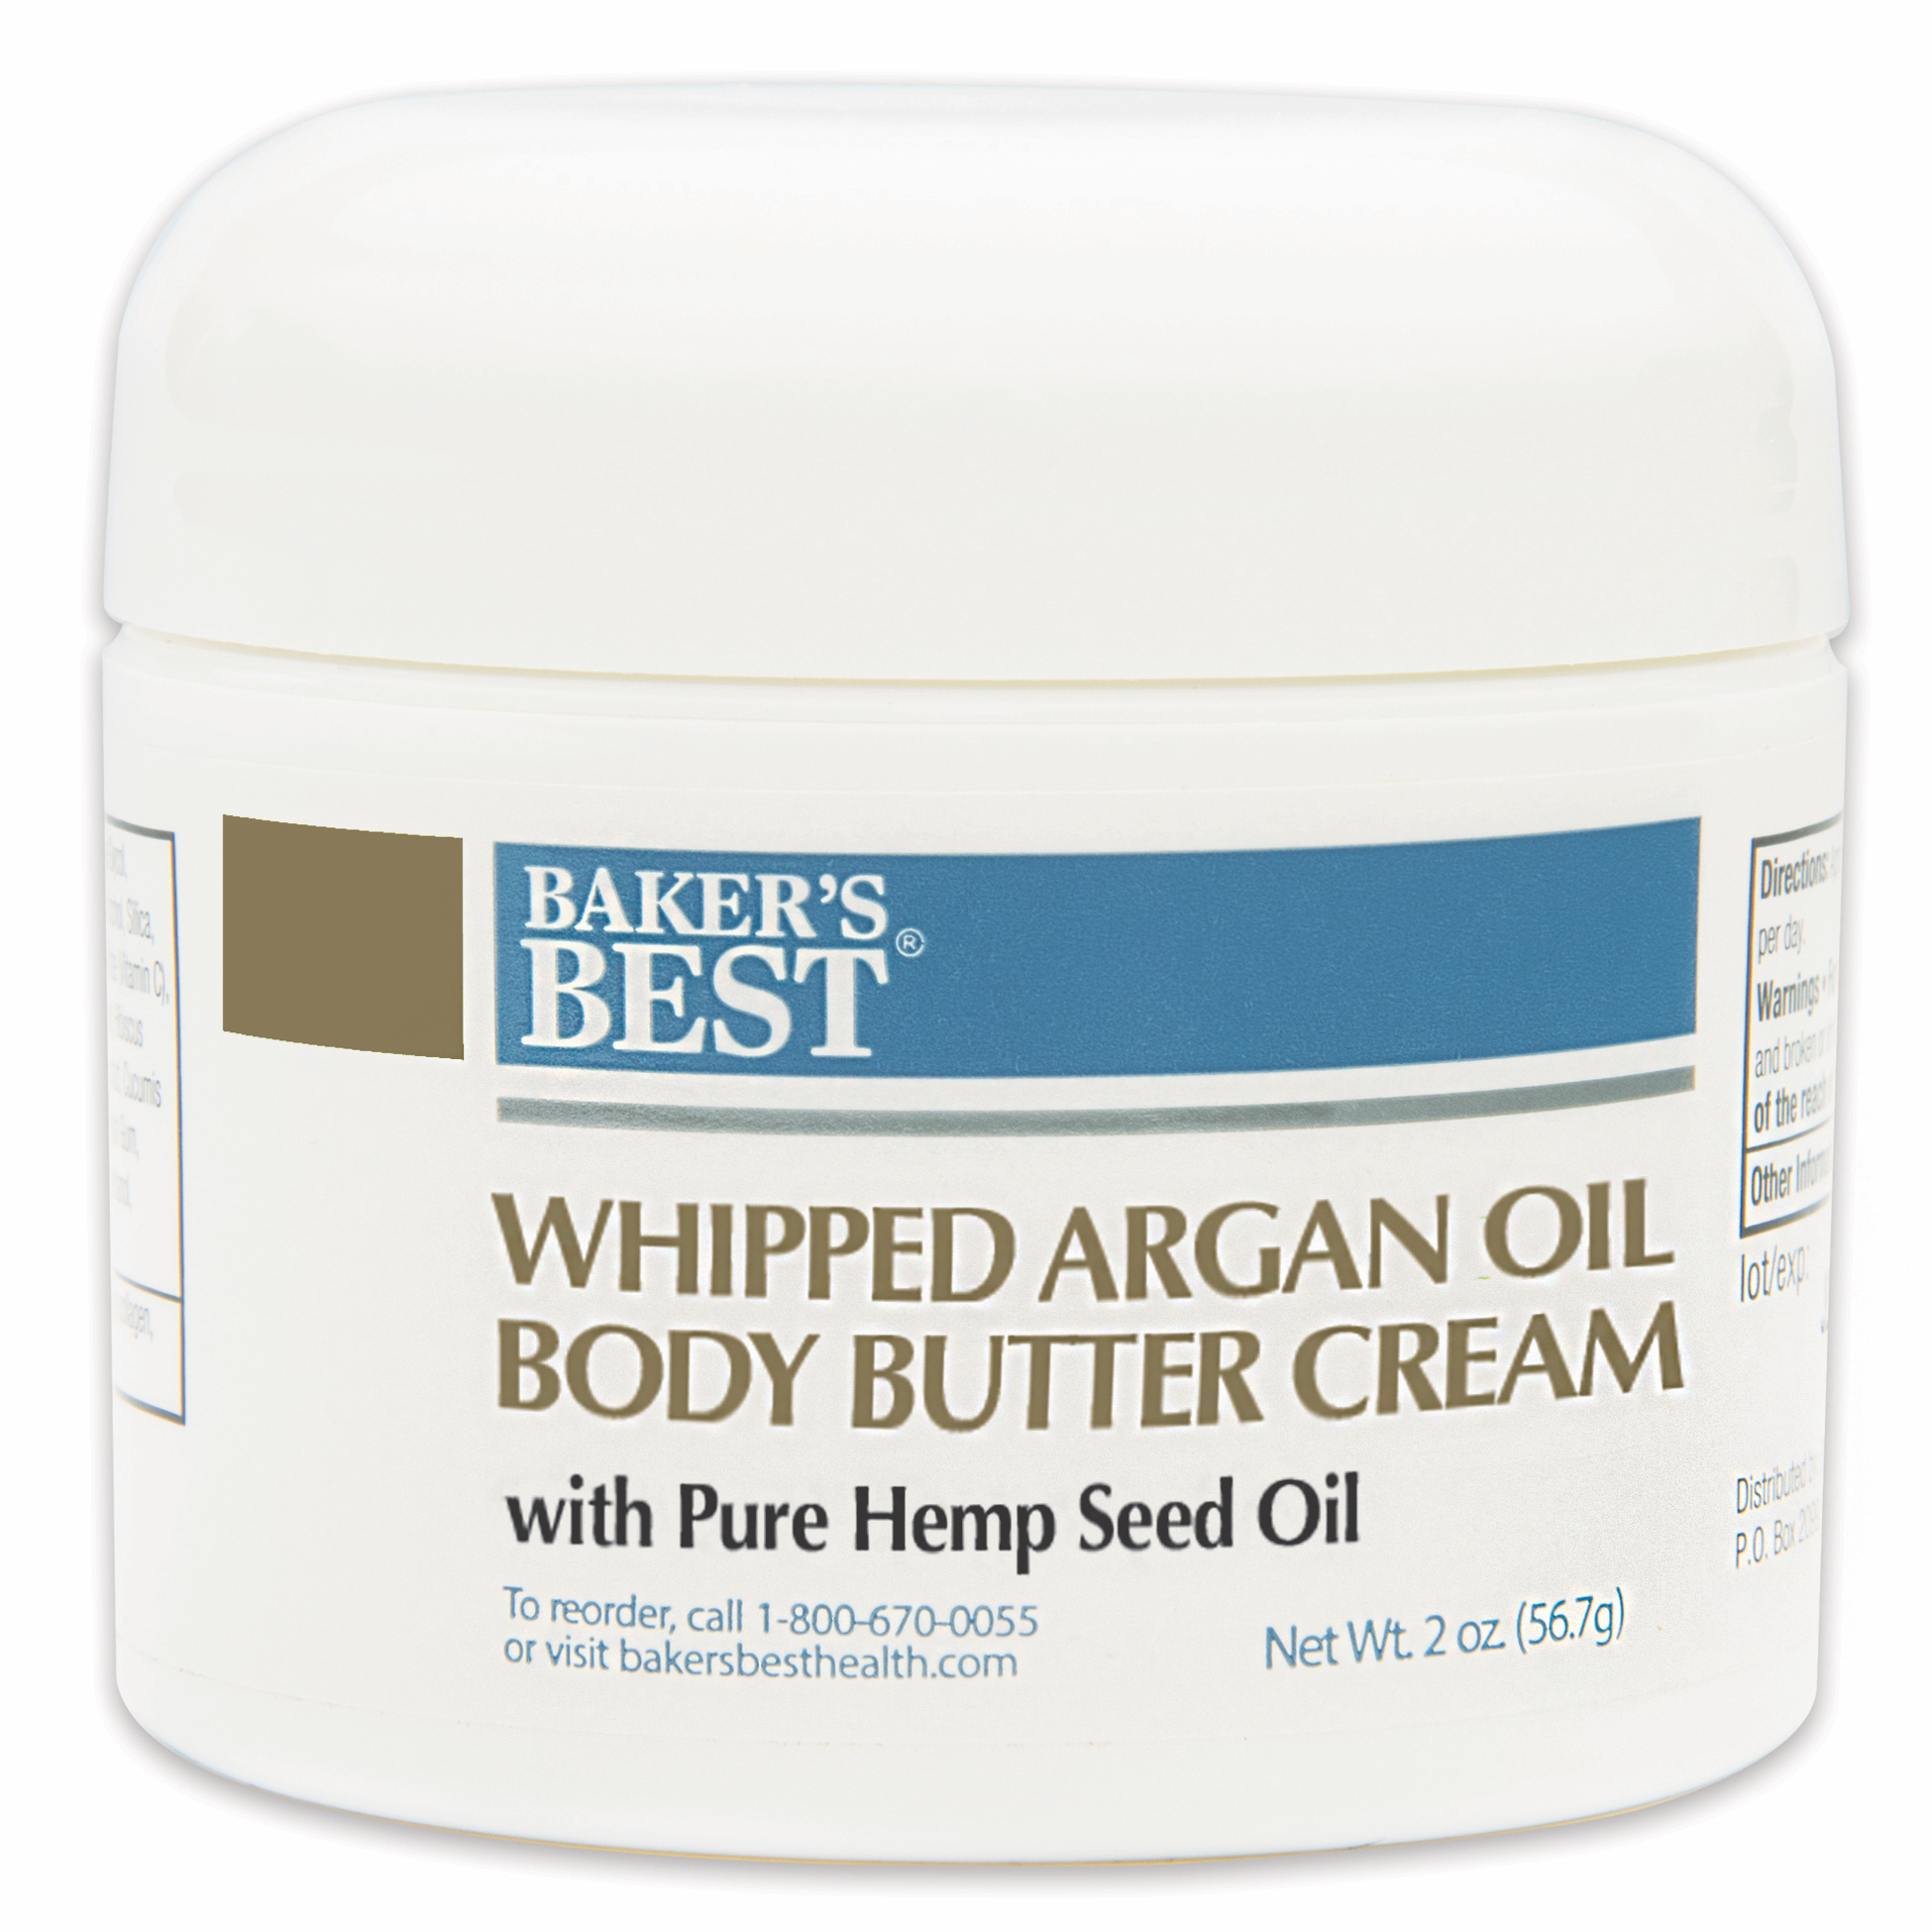 Whipped Argan Oil Body Butter Cream with Pure Hemp Seed Oil